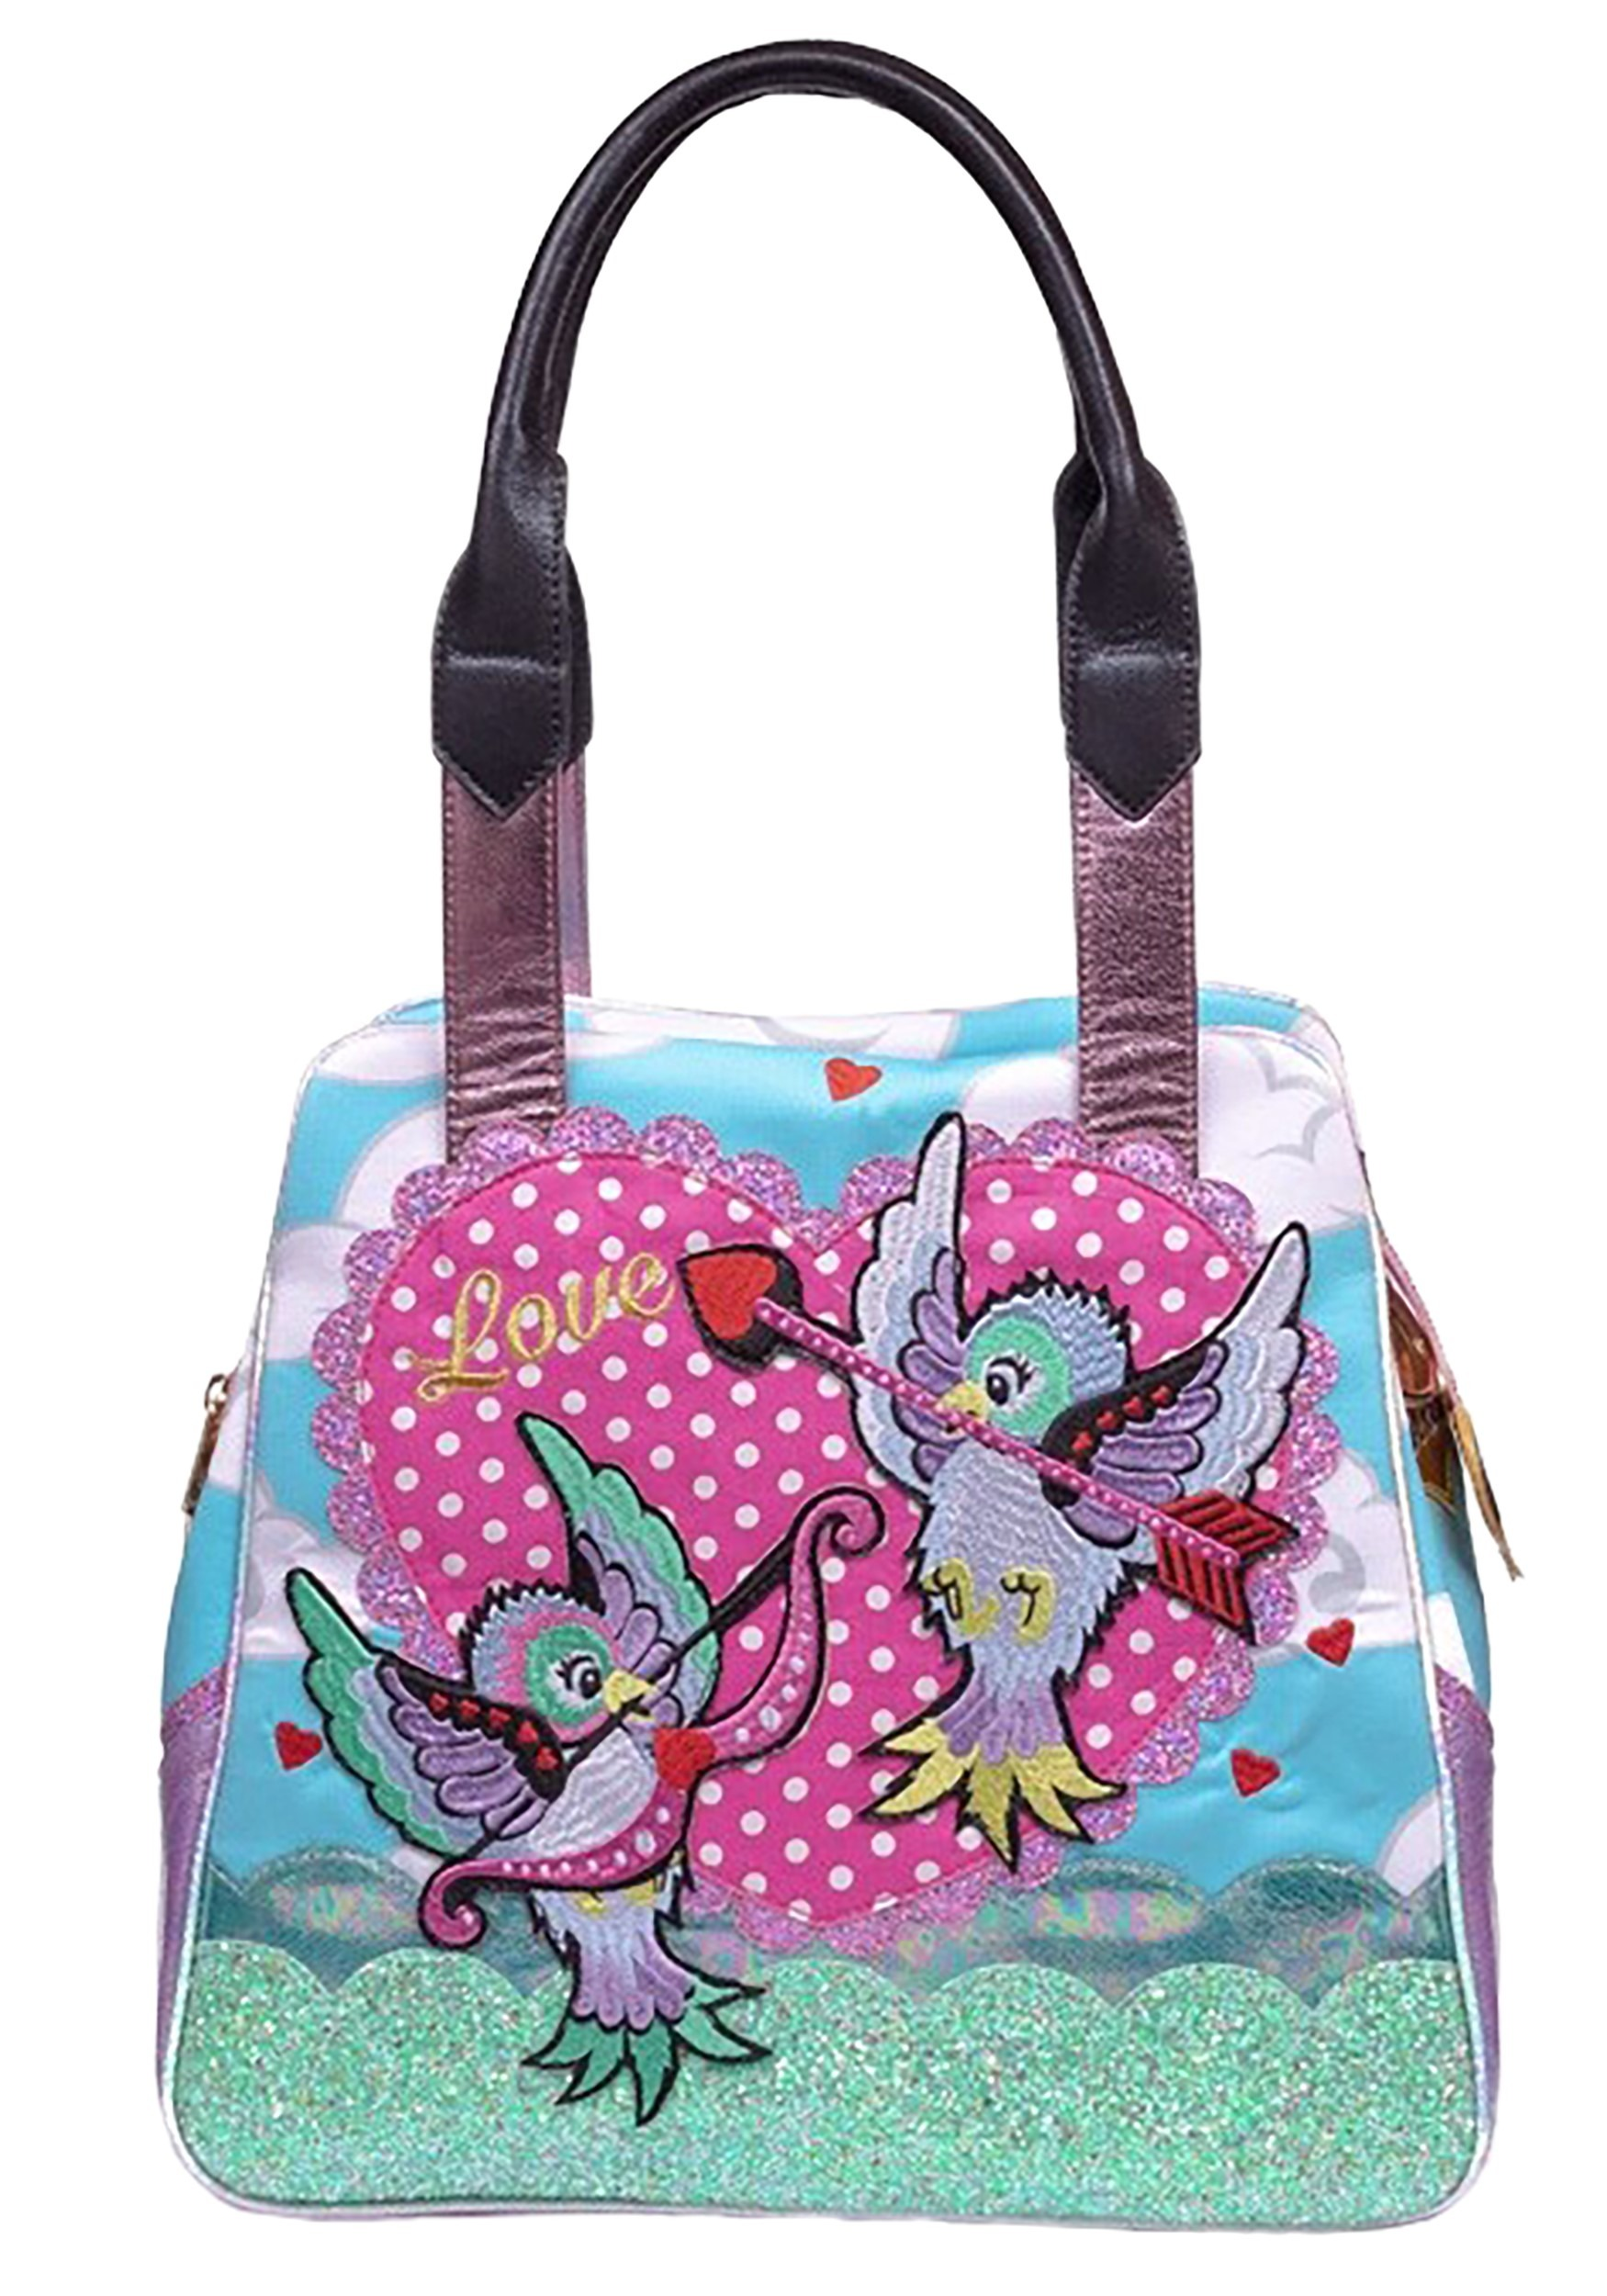 Irregular Choice Cupid Bird Blue Handbag Purse (IRRB112-06A-ST IRRB112-06A) photo